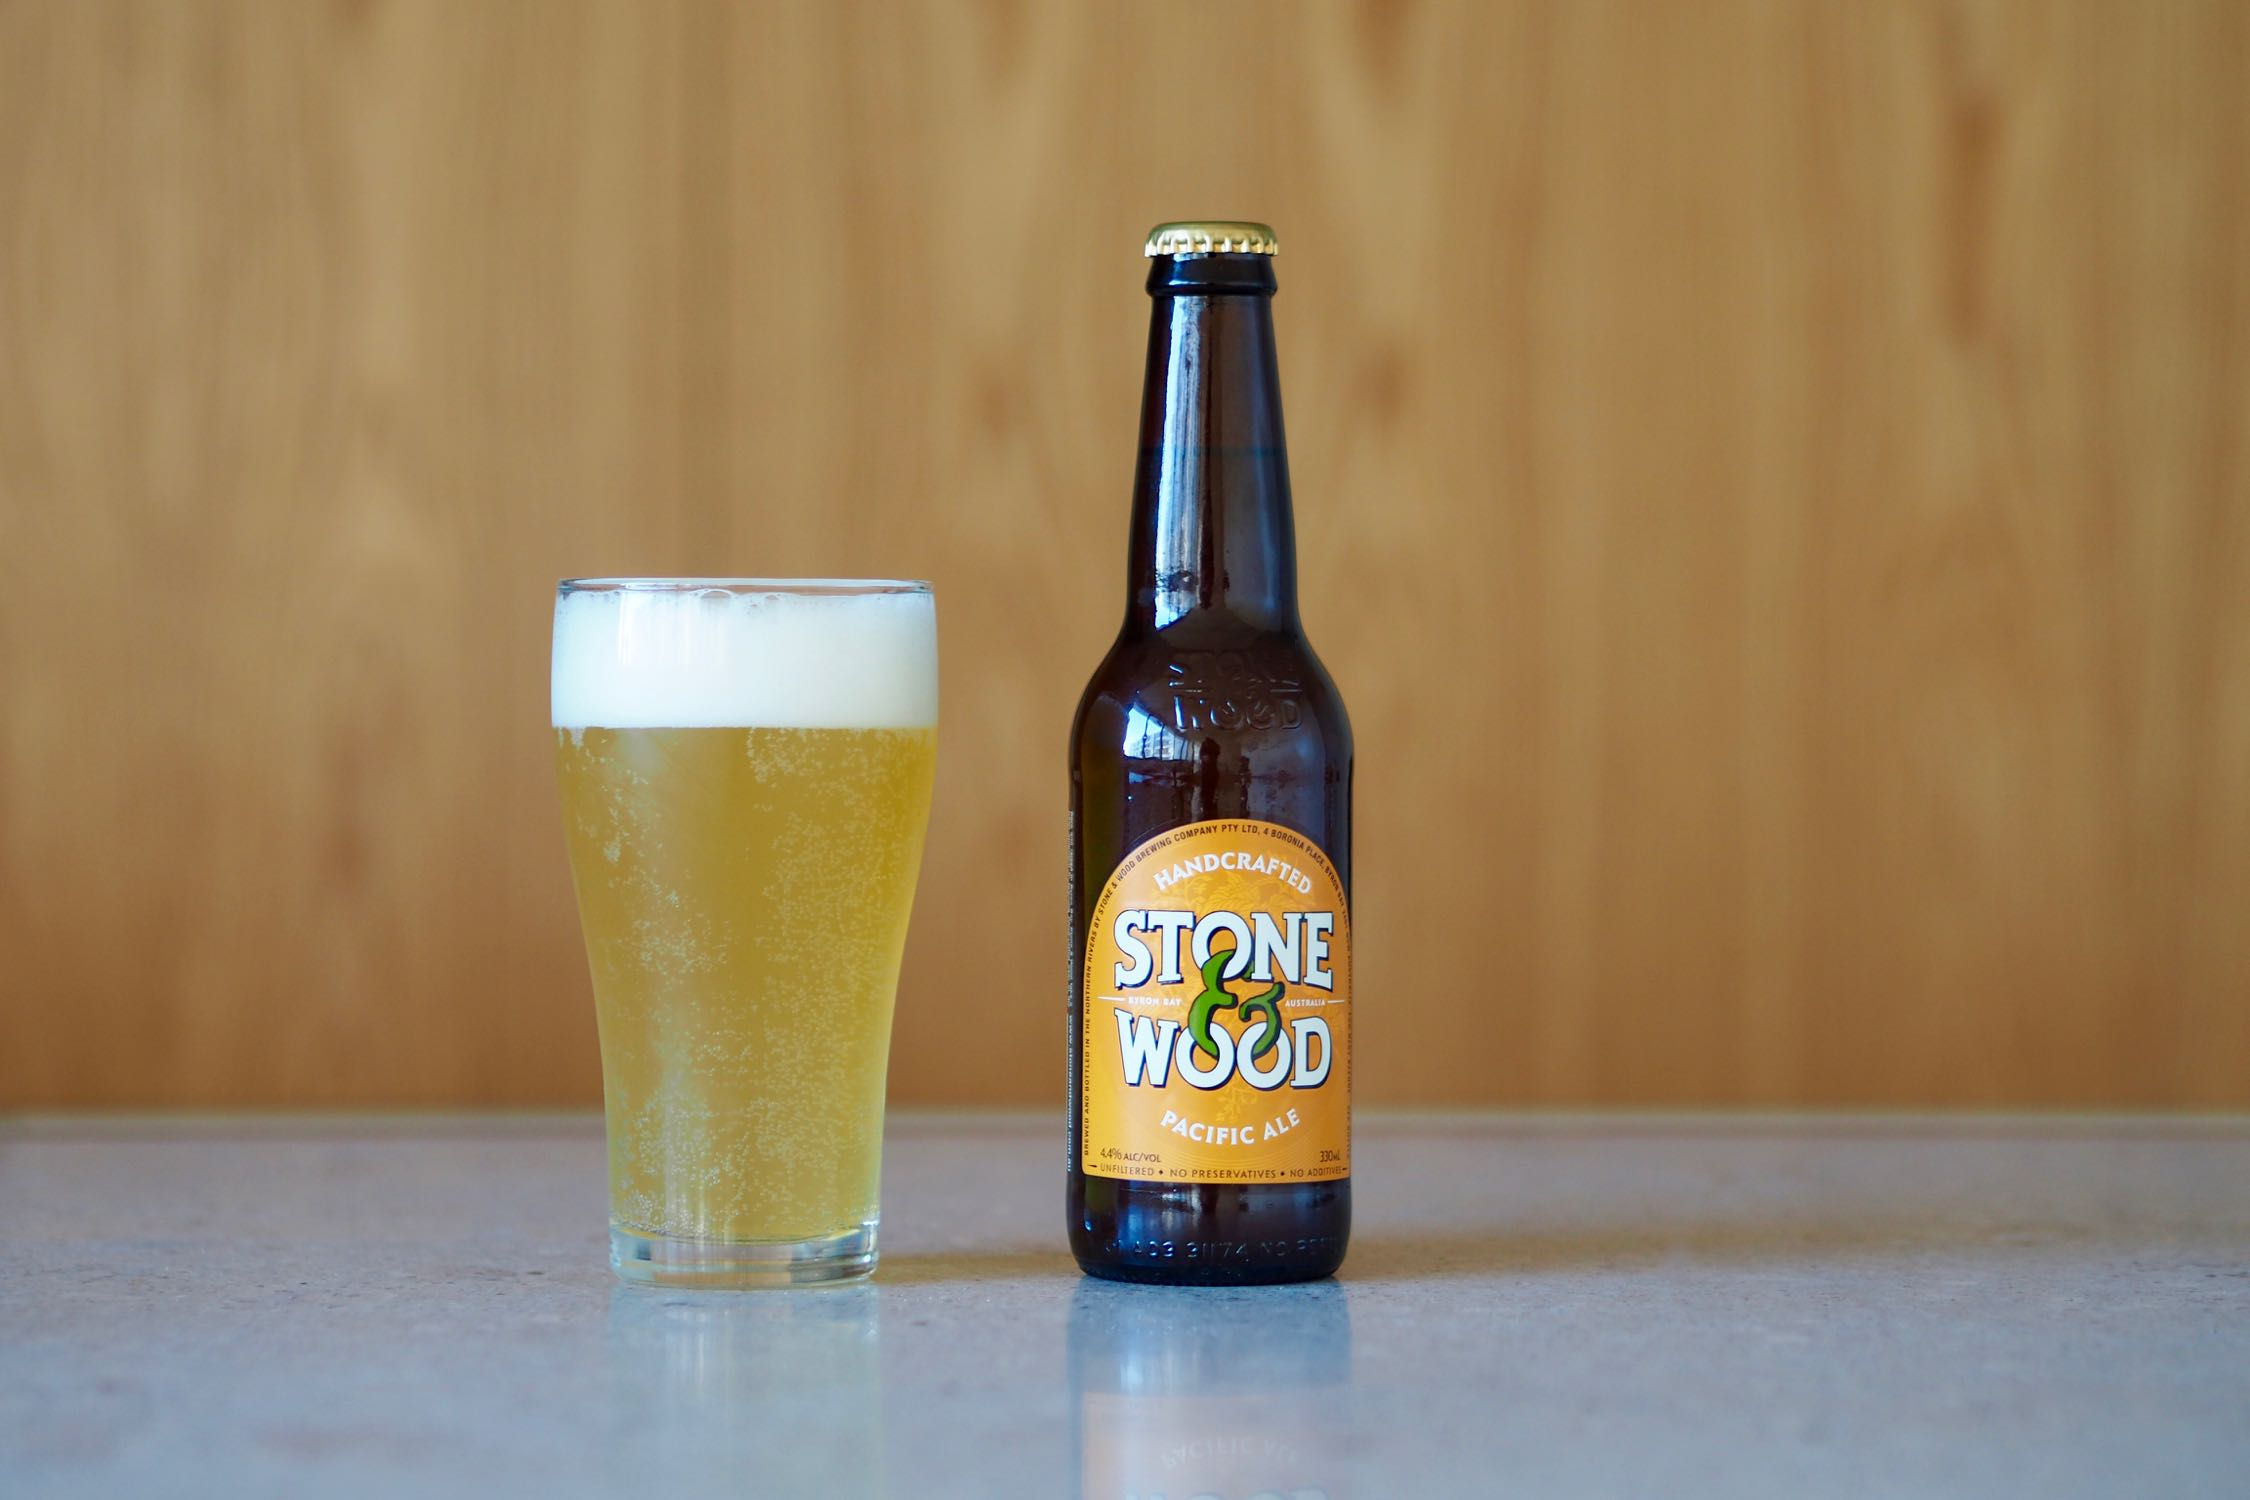 Stone & Wood Pacific Ale Review